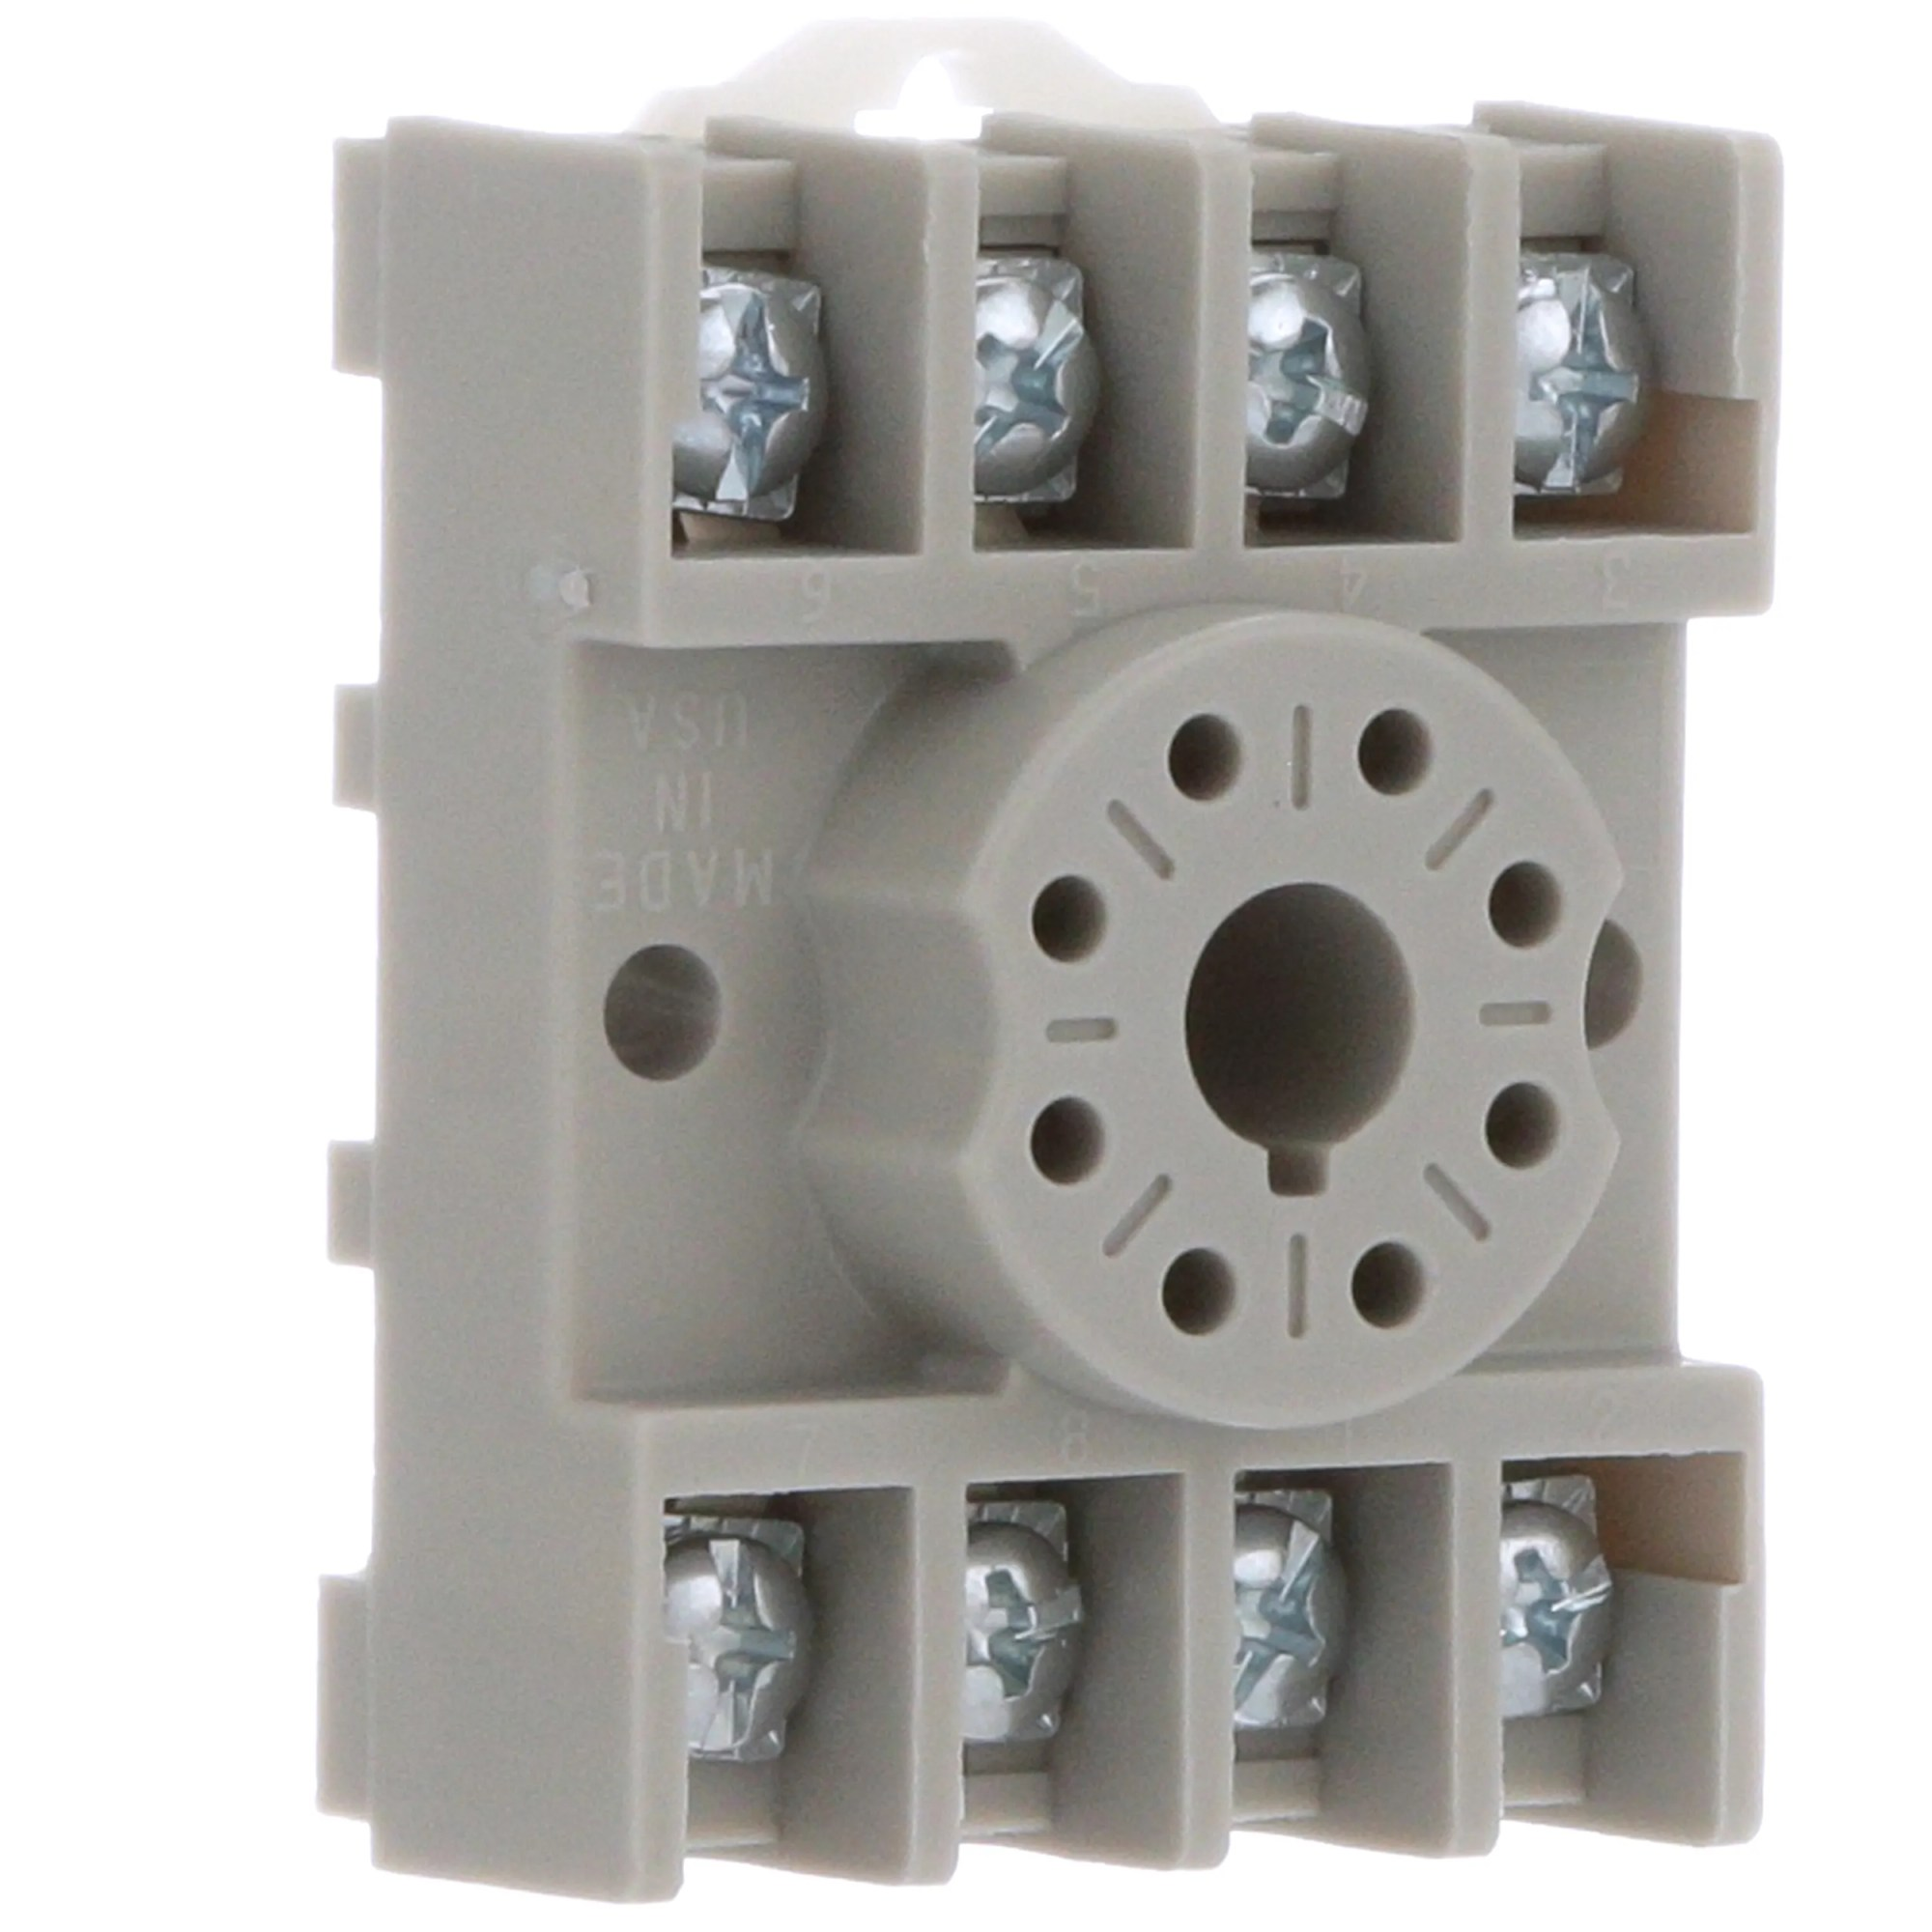 hight resolution of te connectivity 27e891 relay socket 8 pin octal 2 pole screw din rail mount allied electronics automation